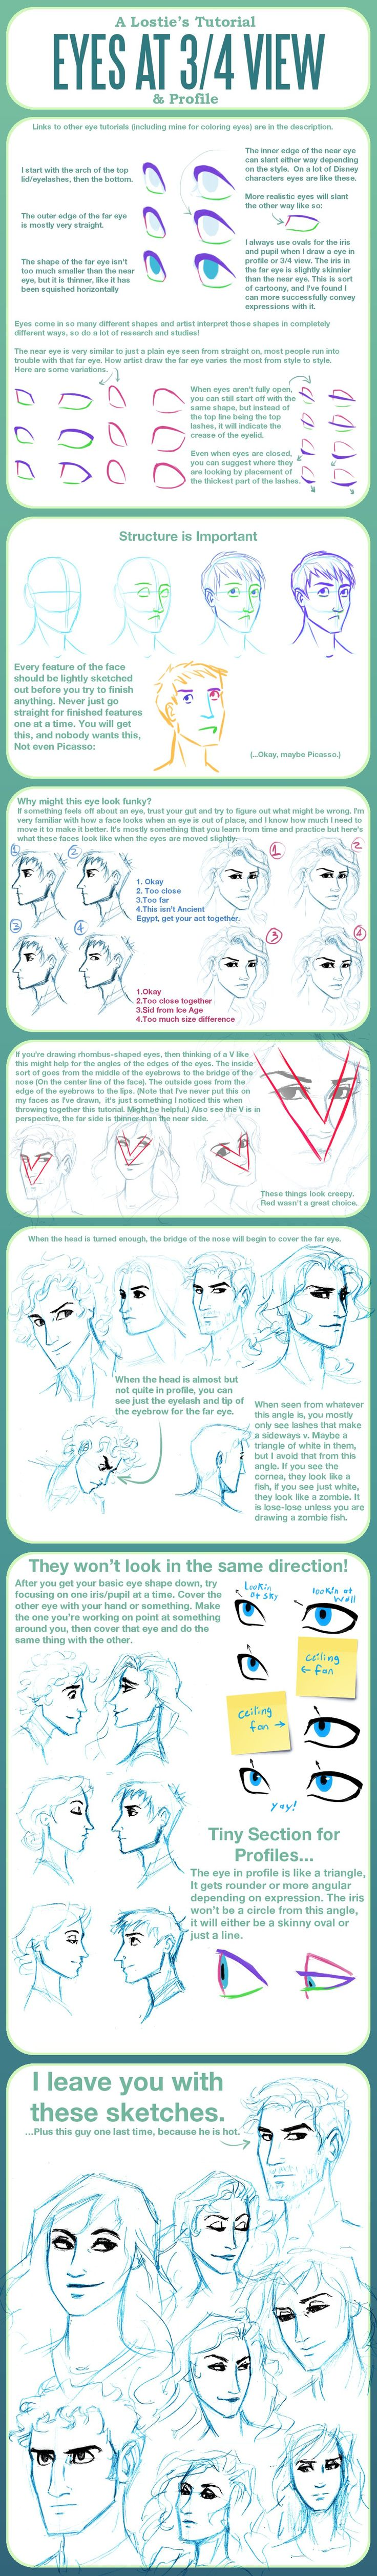 Eye Tutorial at 3/4 View and Profile by lostie815 on deviantART